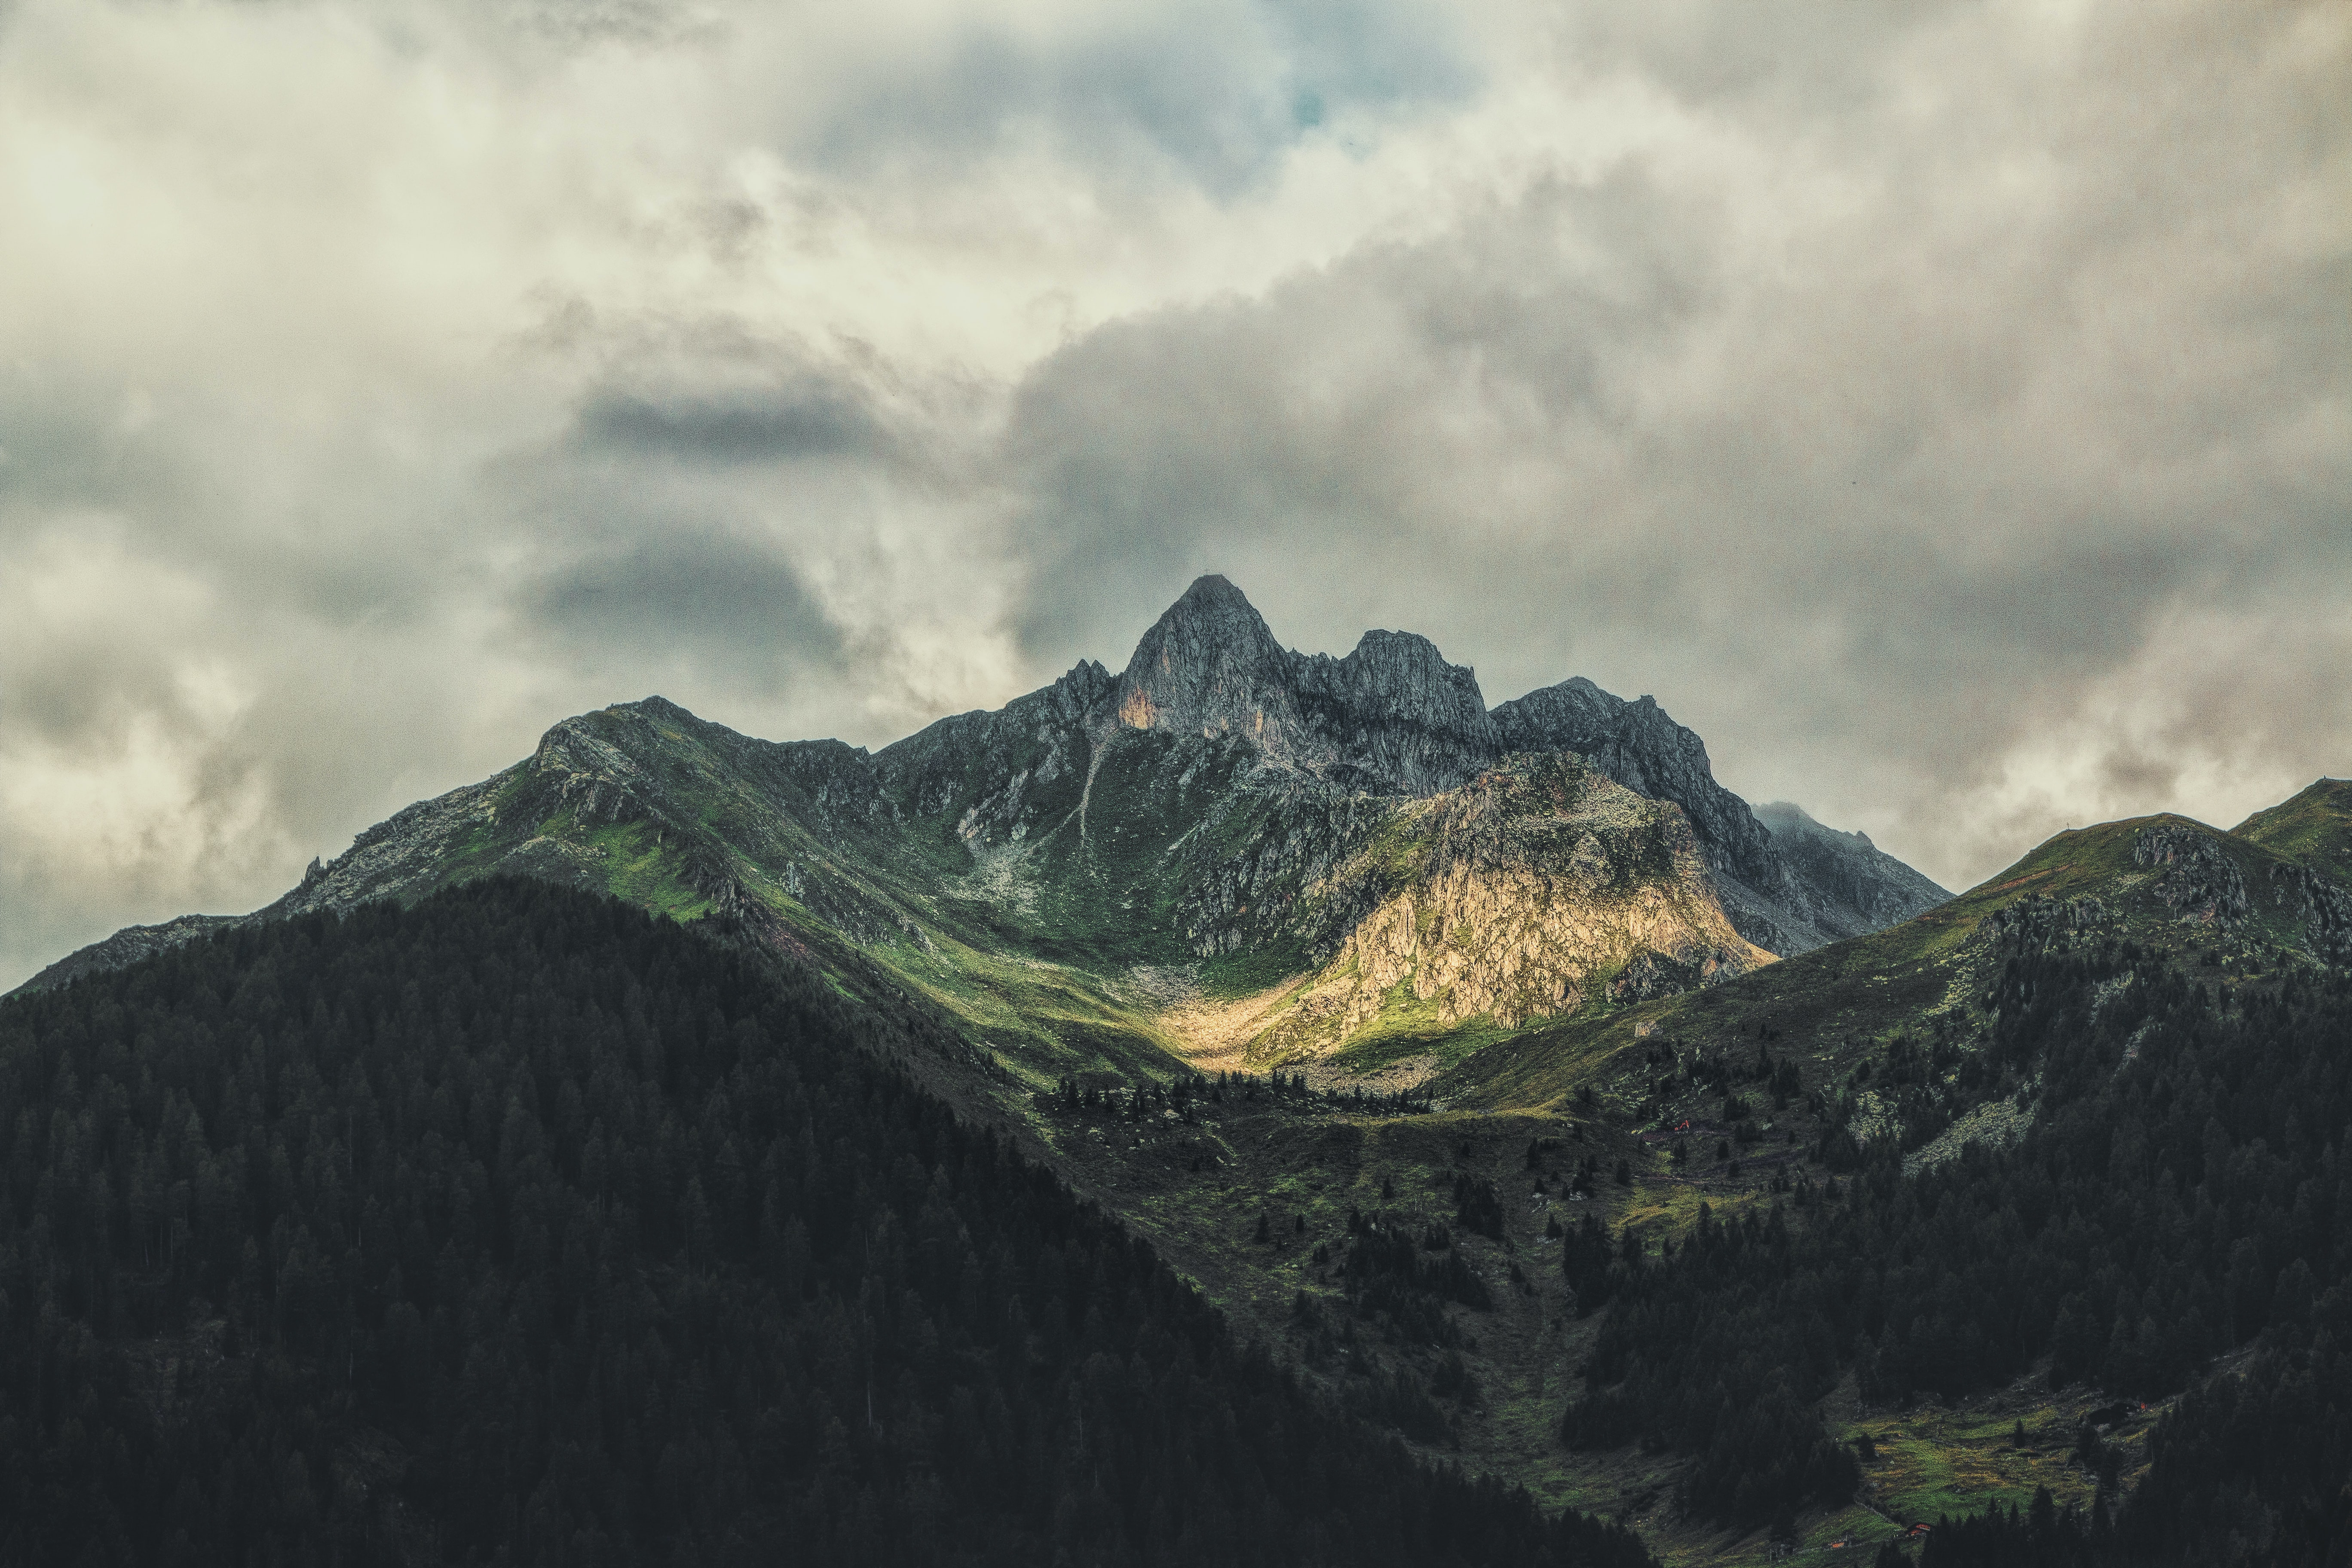 landscape photography of mountain with forest